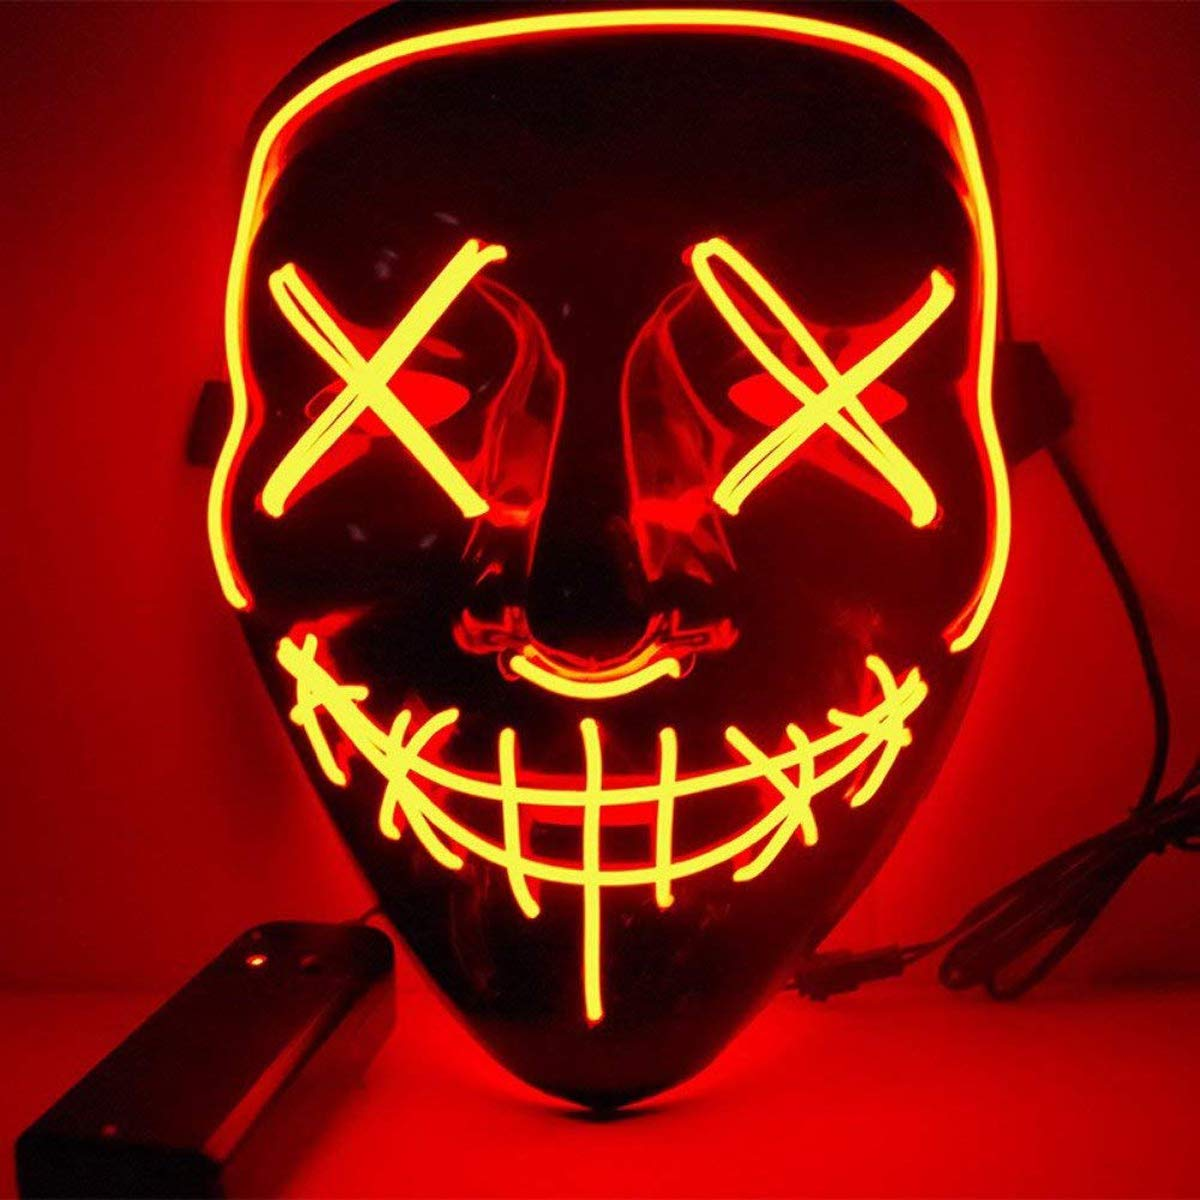 Amazon.com: atimier 2018 Halloween Mask LED Light up Purge Mask for Festival Cosplay Halloween Costume: Toys & Games